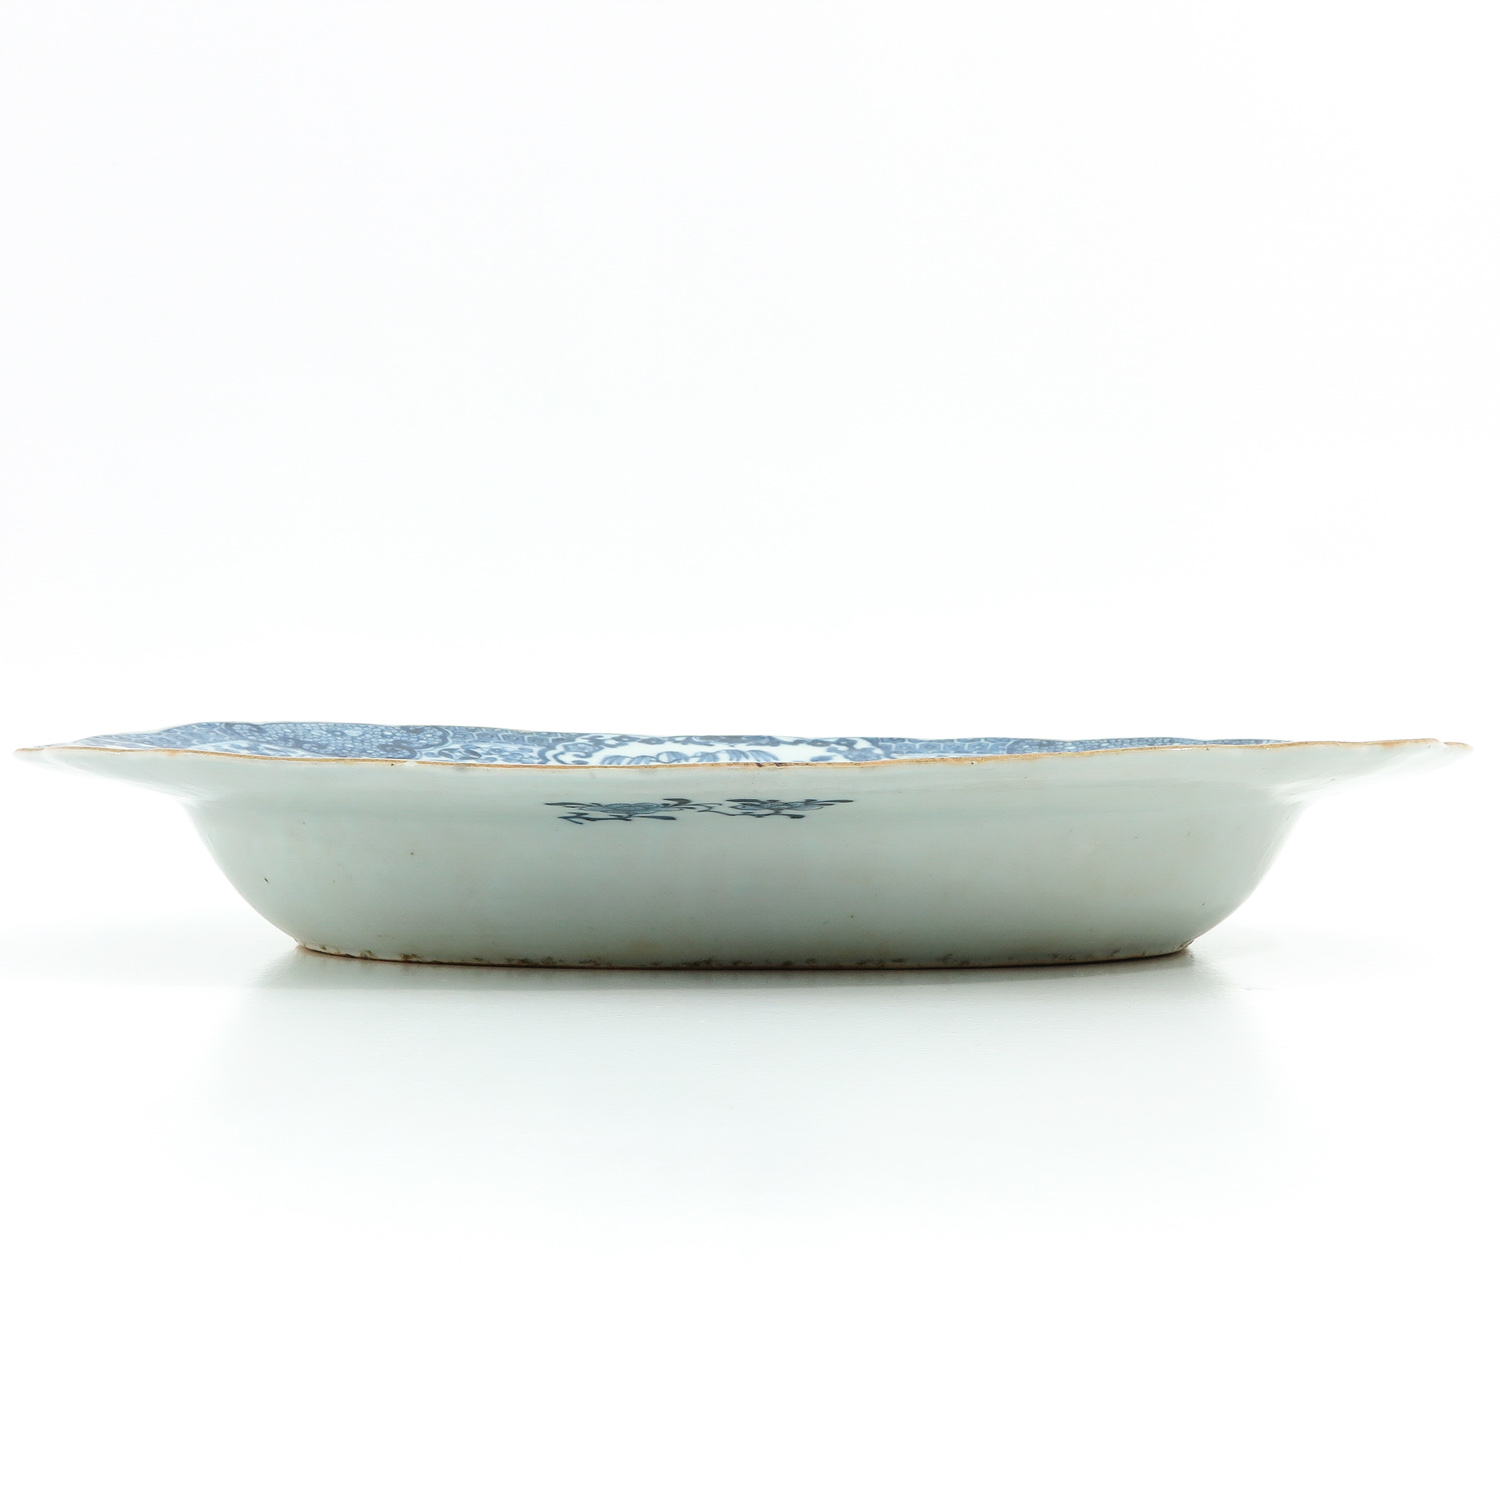 A Blue and White Serving Tray - Image 4 of 7